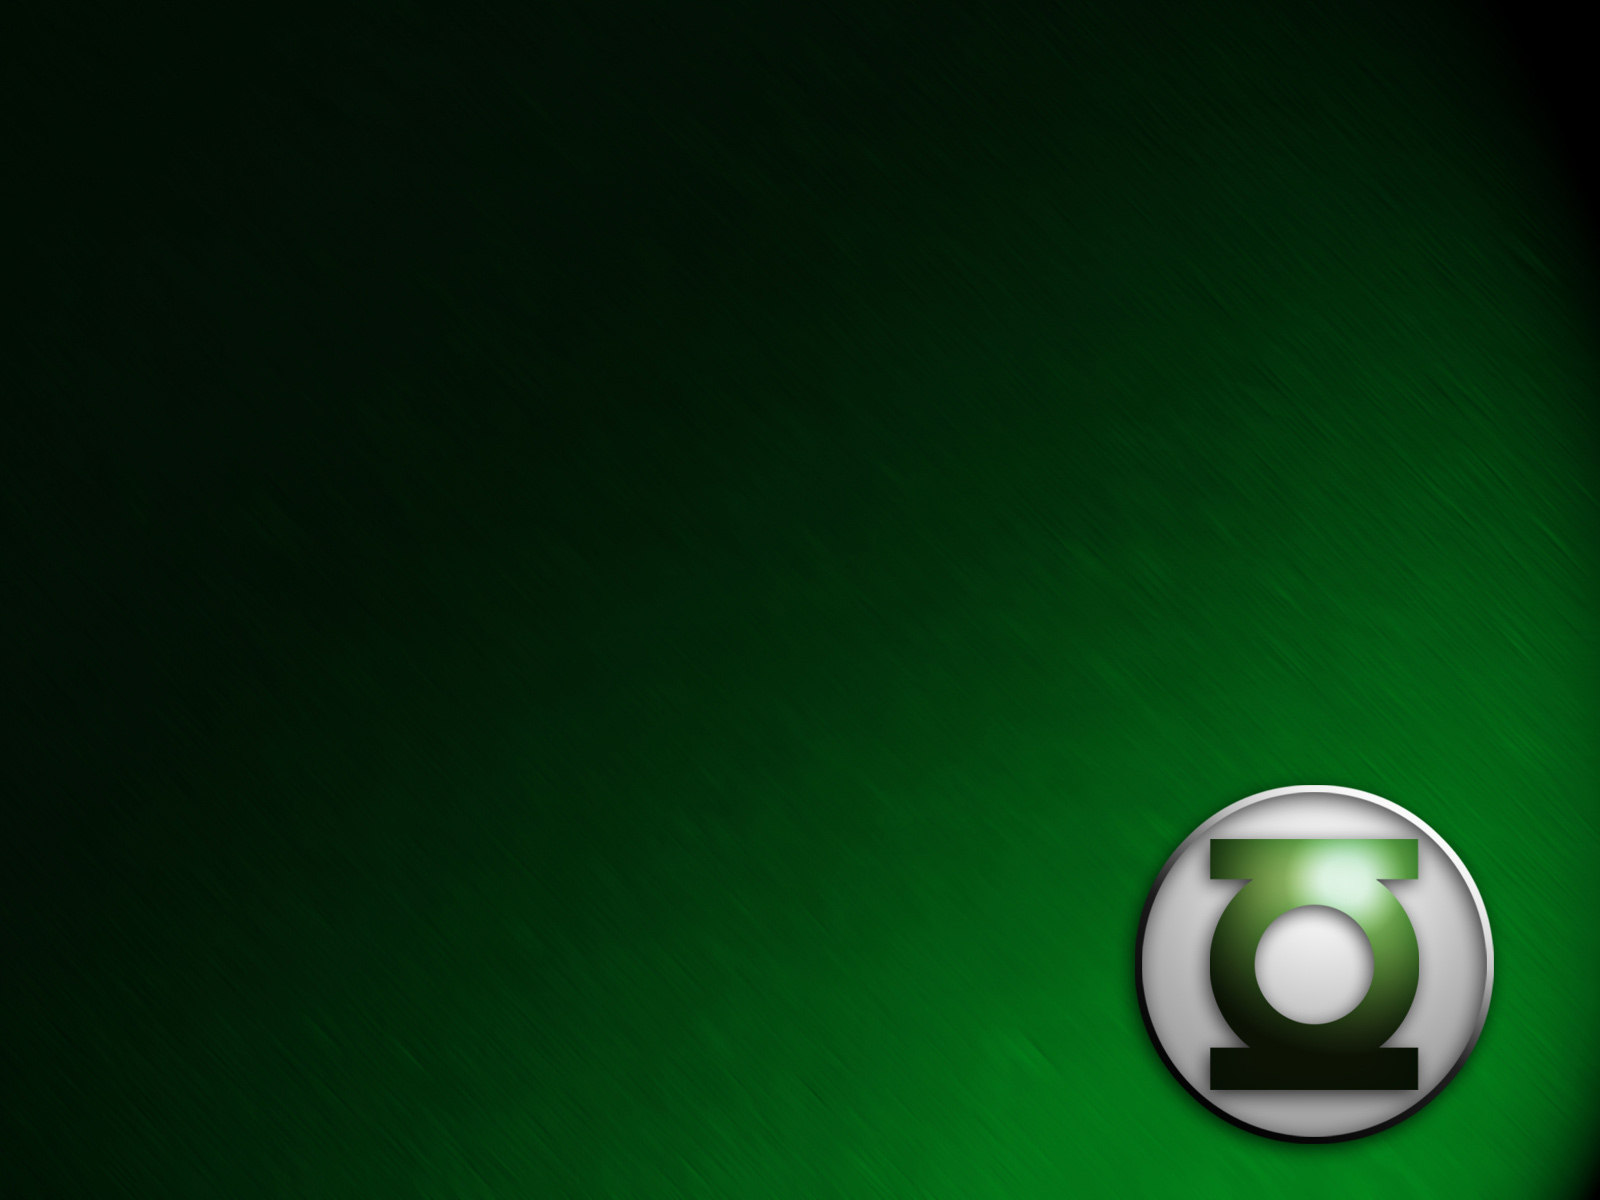 Green Lantern Wallpaper   Cartoon Wallpapers 1600x1200